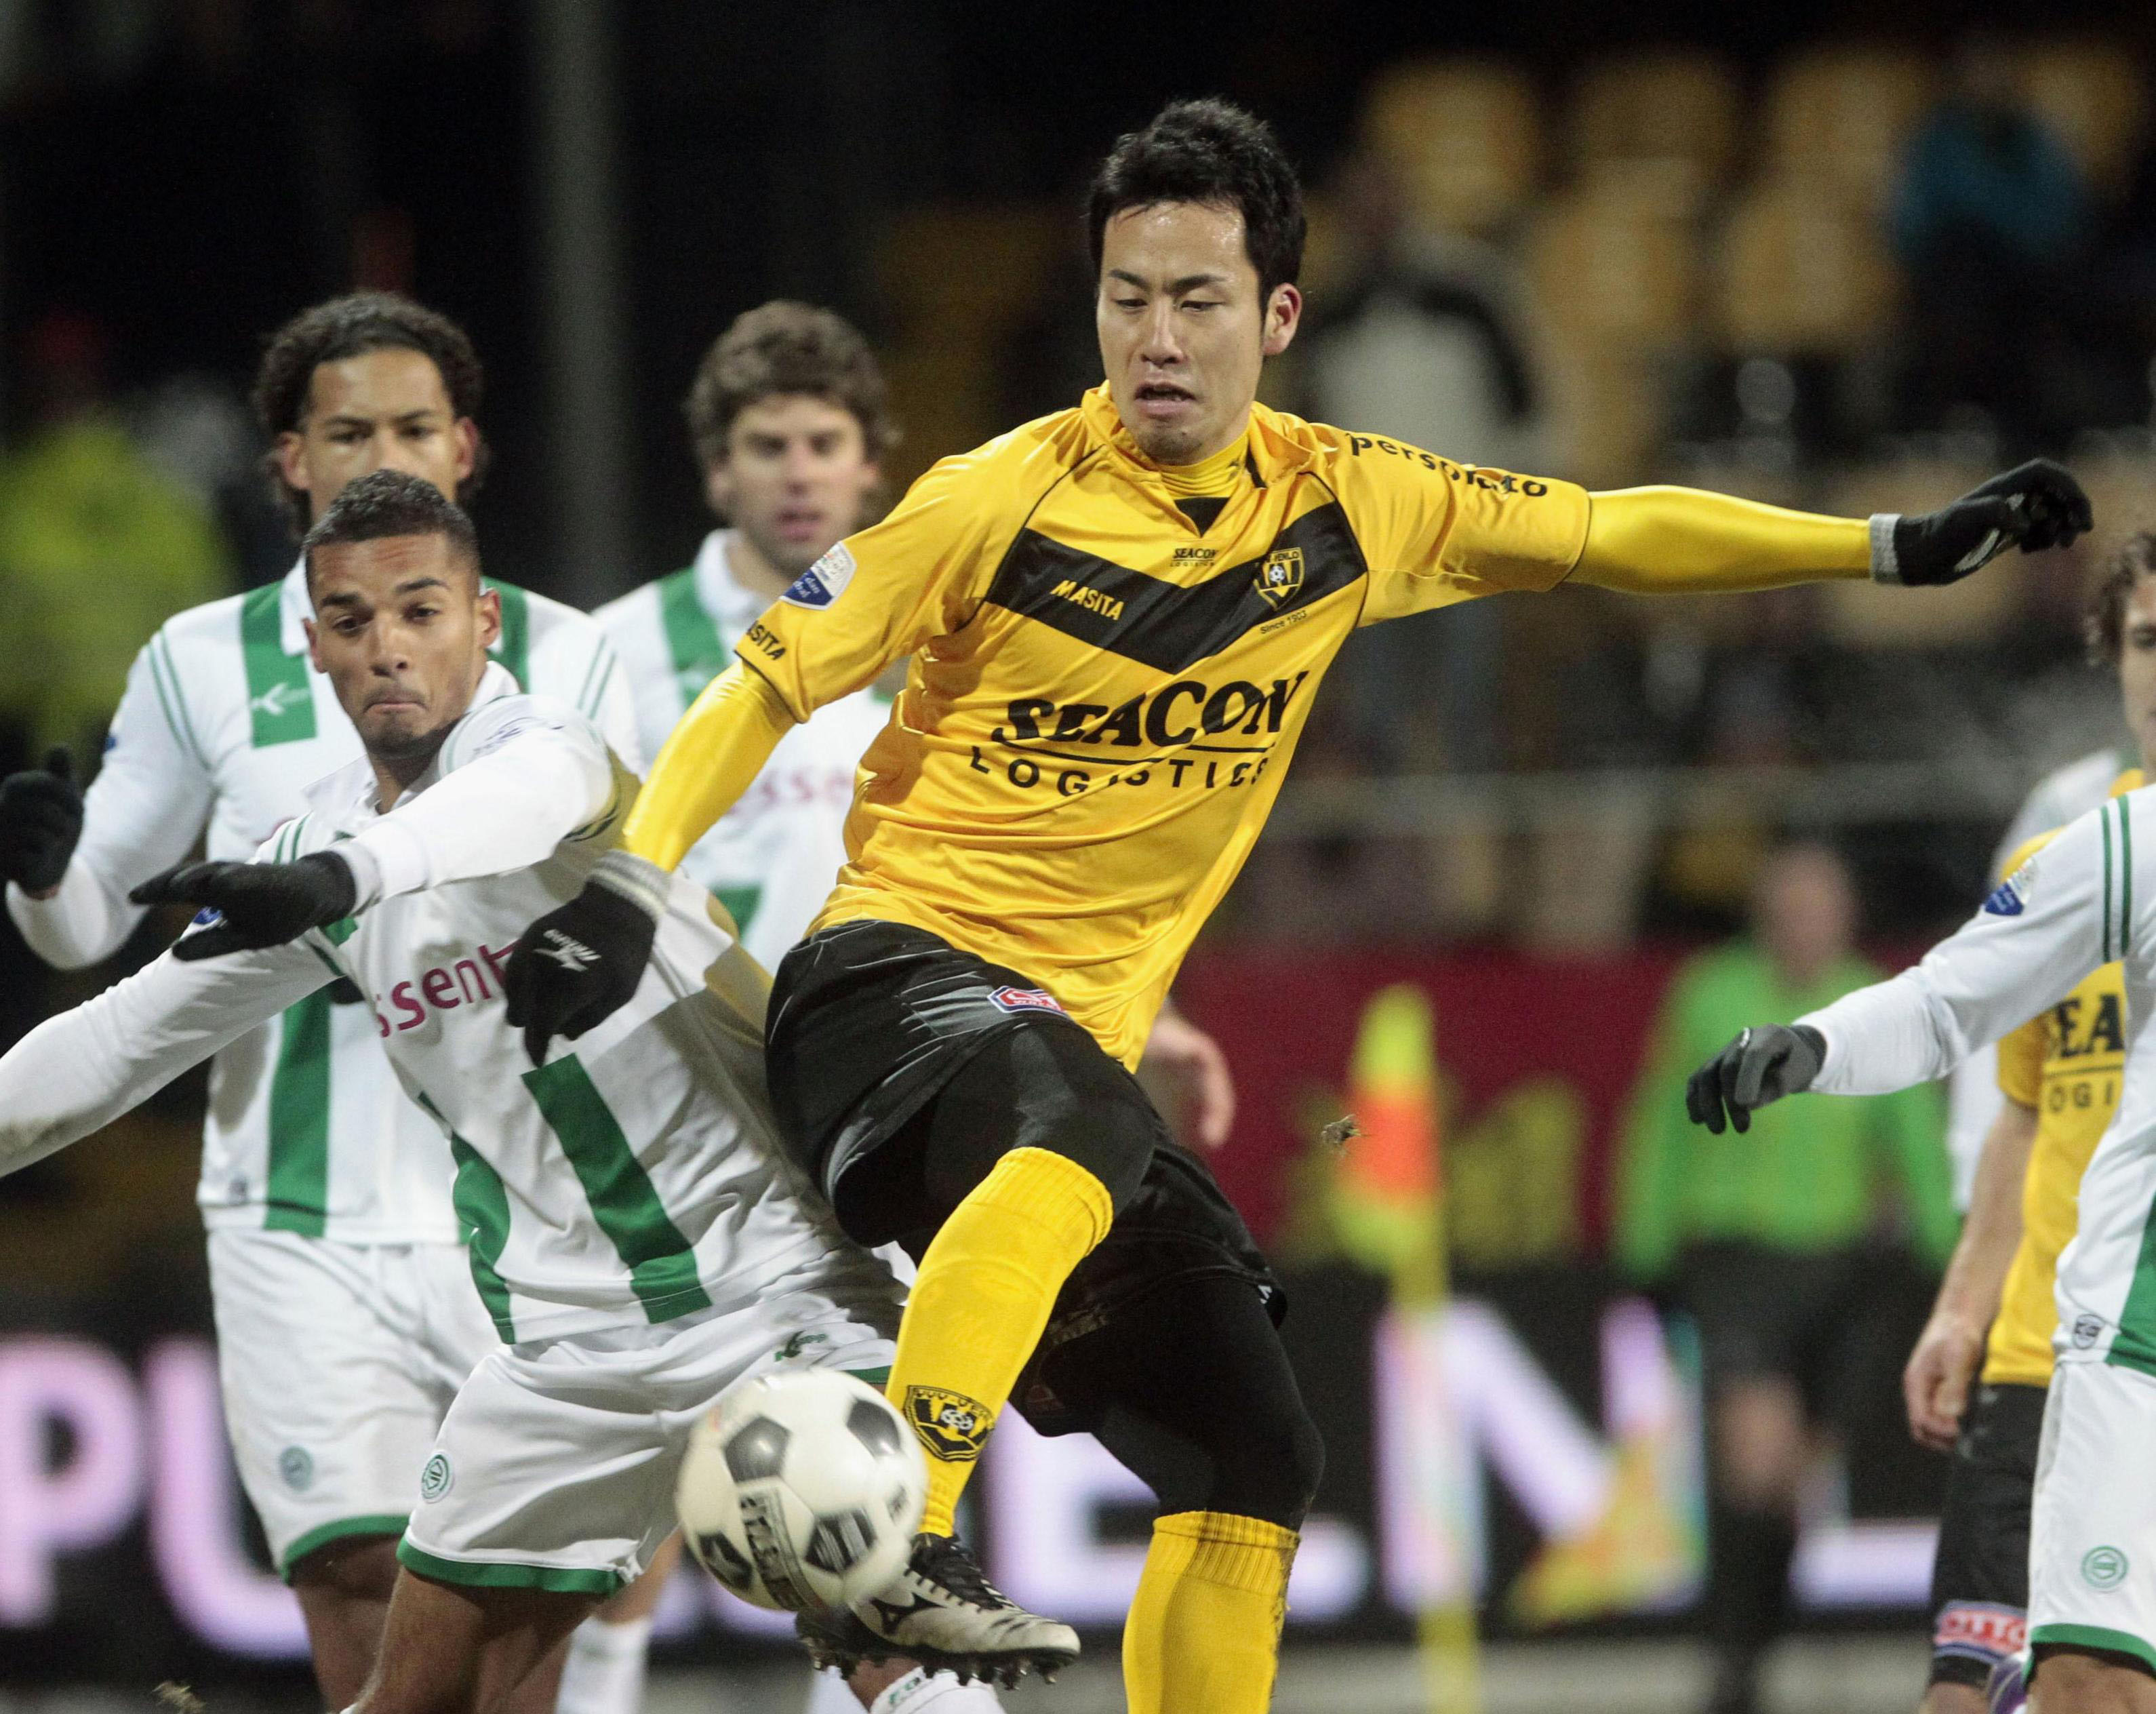 Stepping stone: Japan defender Maya Yoshida played for modest Dutch club VVV Venlo before joining Southampton in England's Premier League. | KYODO